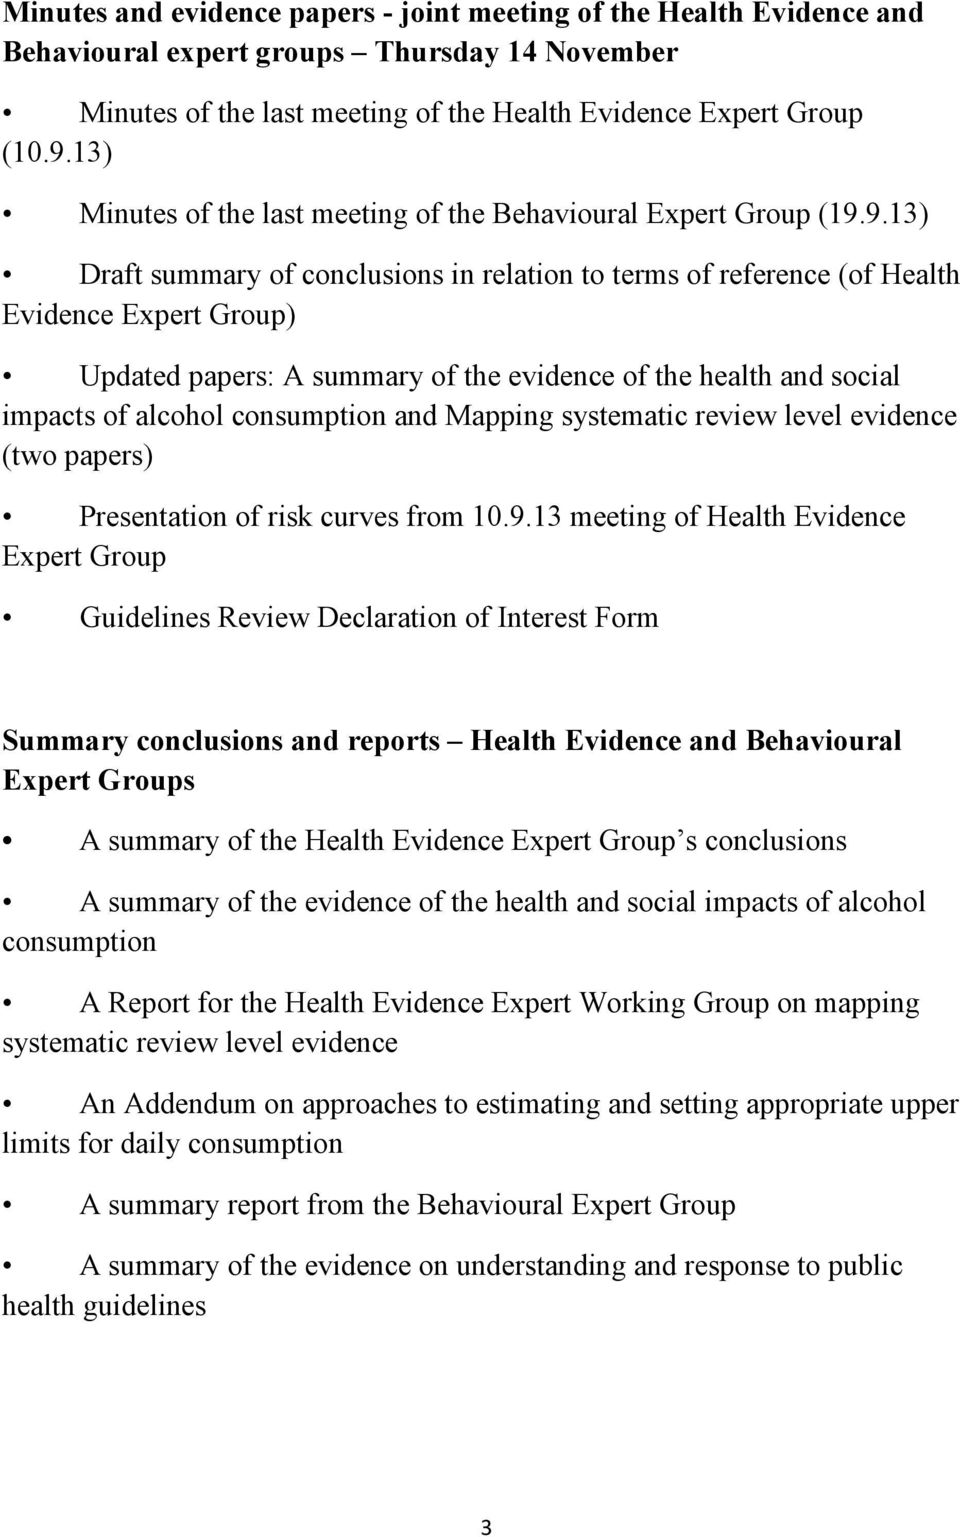 9.13) Draft summary of conclusions in relation to terms of reference (of Health Evidence Expert Group) Updated papers: A summary of the evidence of the health and social impacts of alcohol